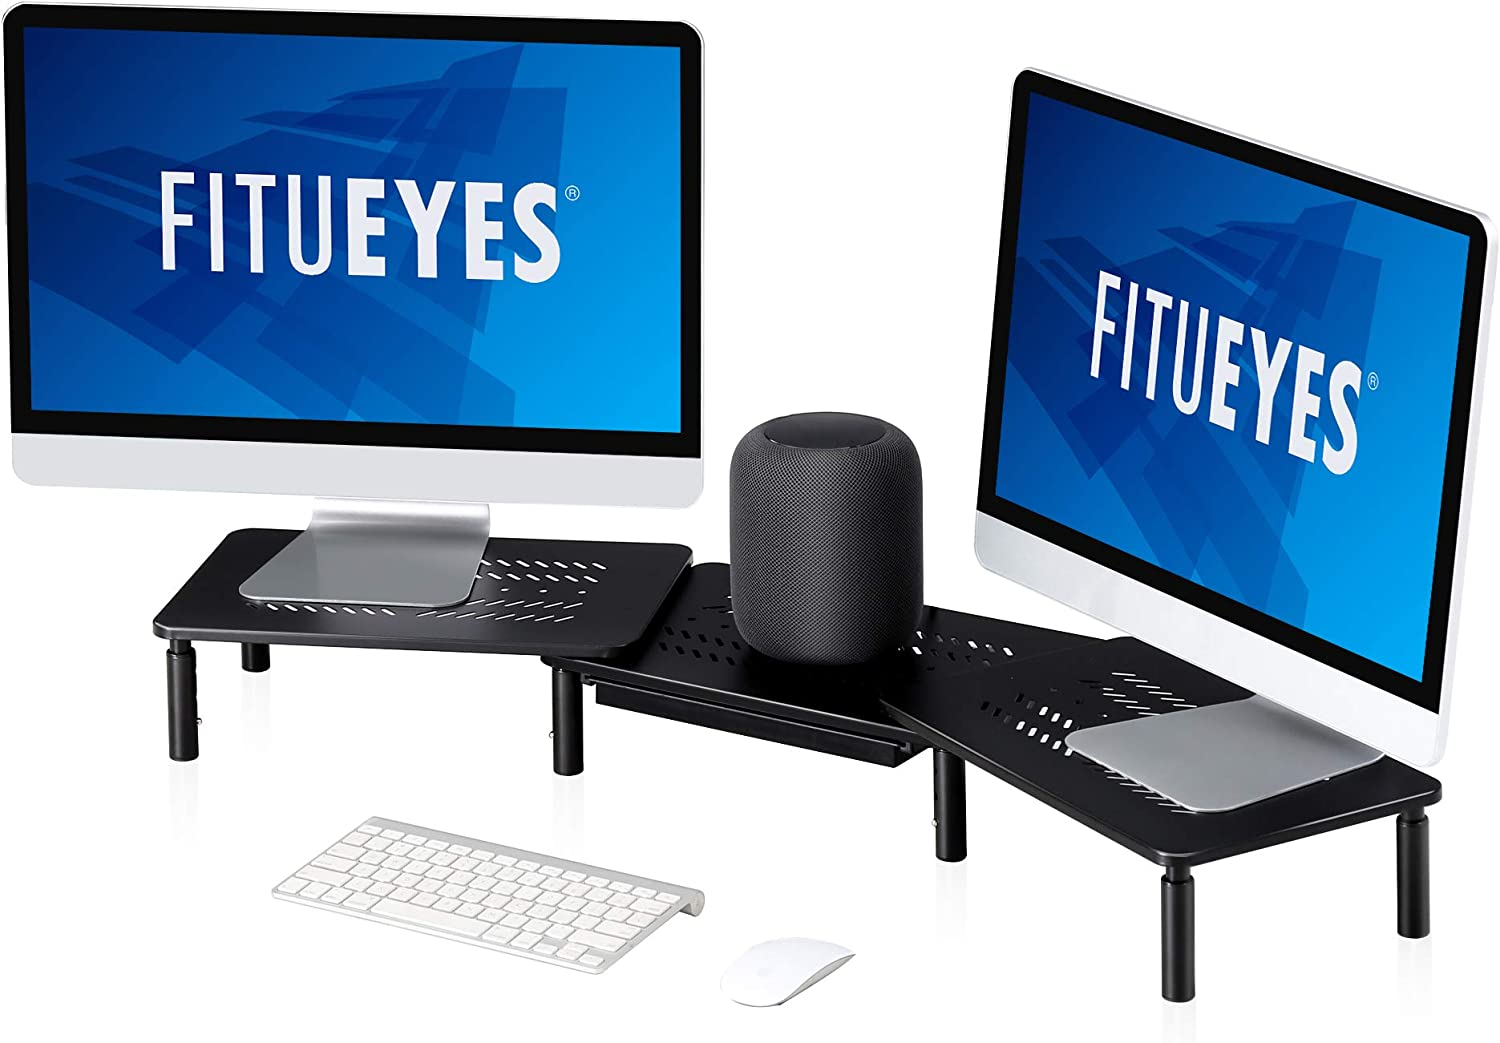 FITUEYES Dual Monitor Stand Riser, Adjustable Length and Angle 3 Shelf Screen Stand, Desktop Storage Organizer Riser for PC, Computer, Laptop, with Mesh Platform for Airflow DT115903MB